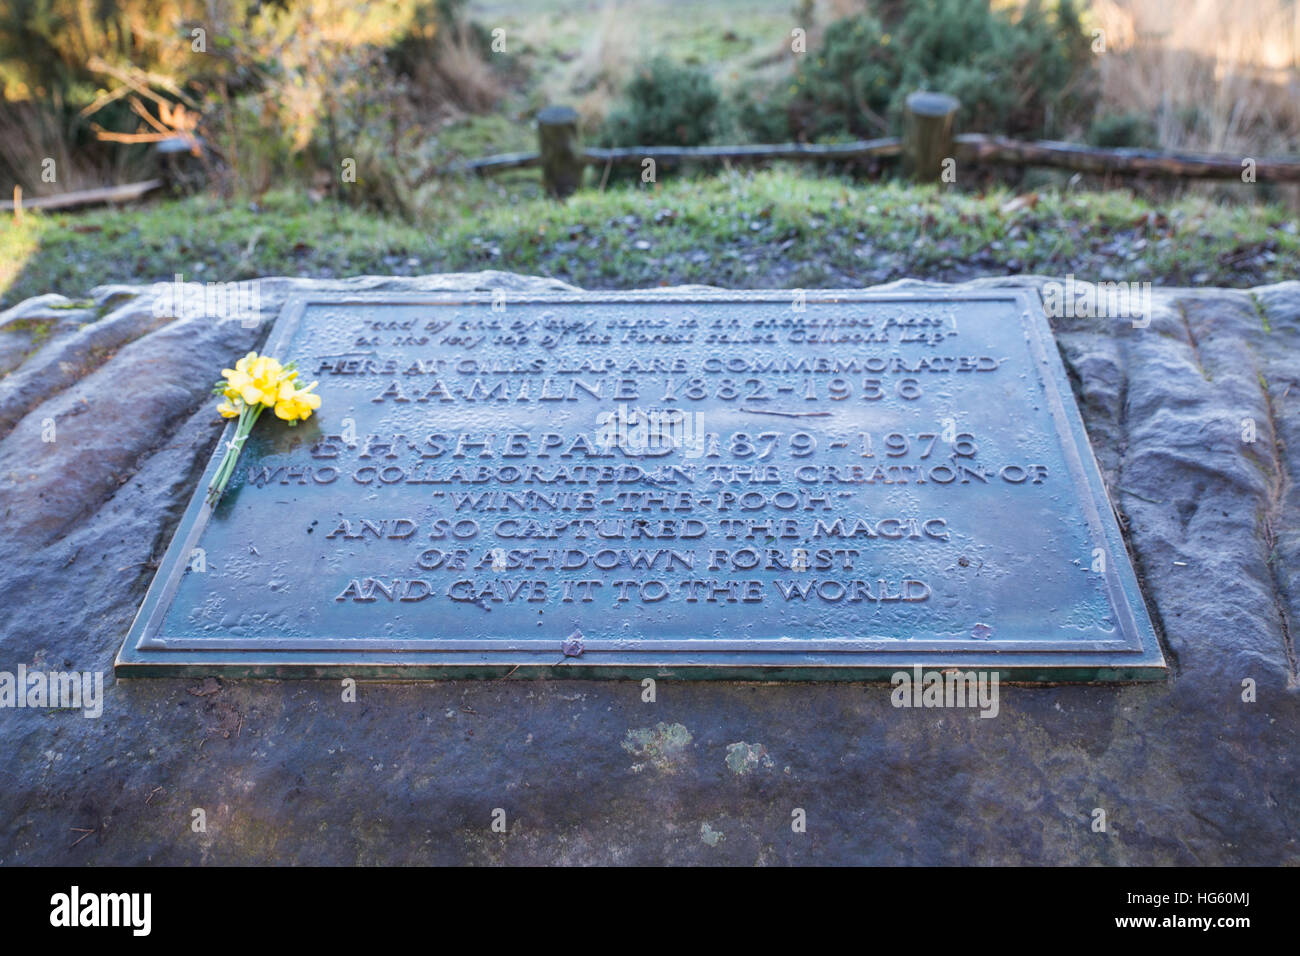 The A A Milne Memorial plaque on Ashdown Forest, - Stock Image